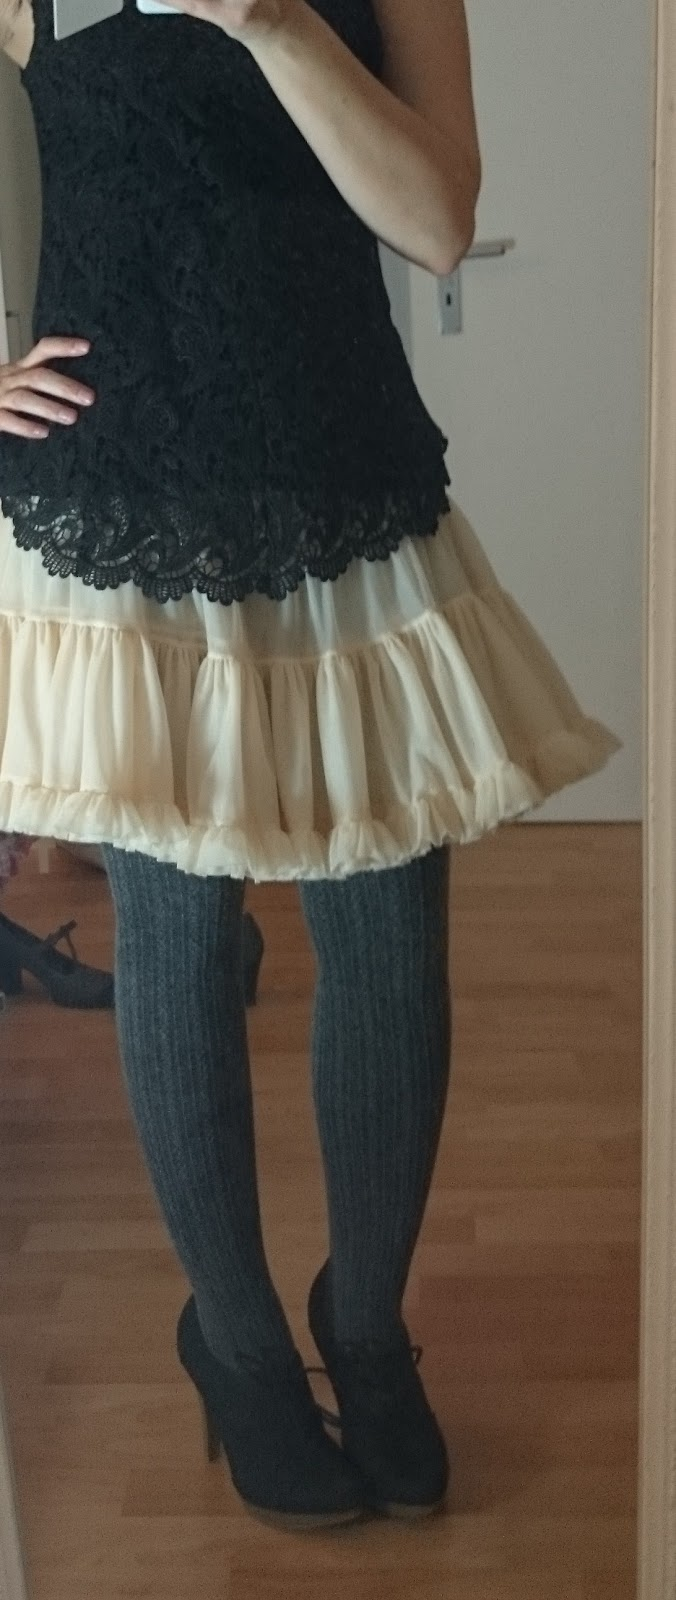 How to style a Petticoat - Black Lace